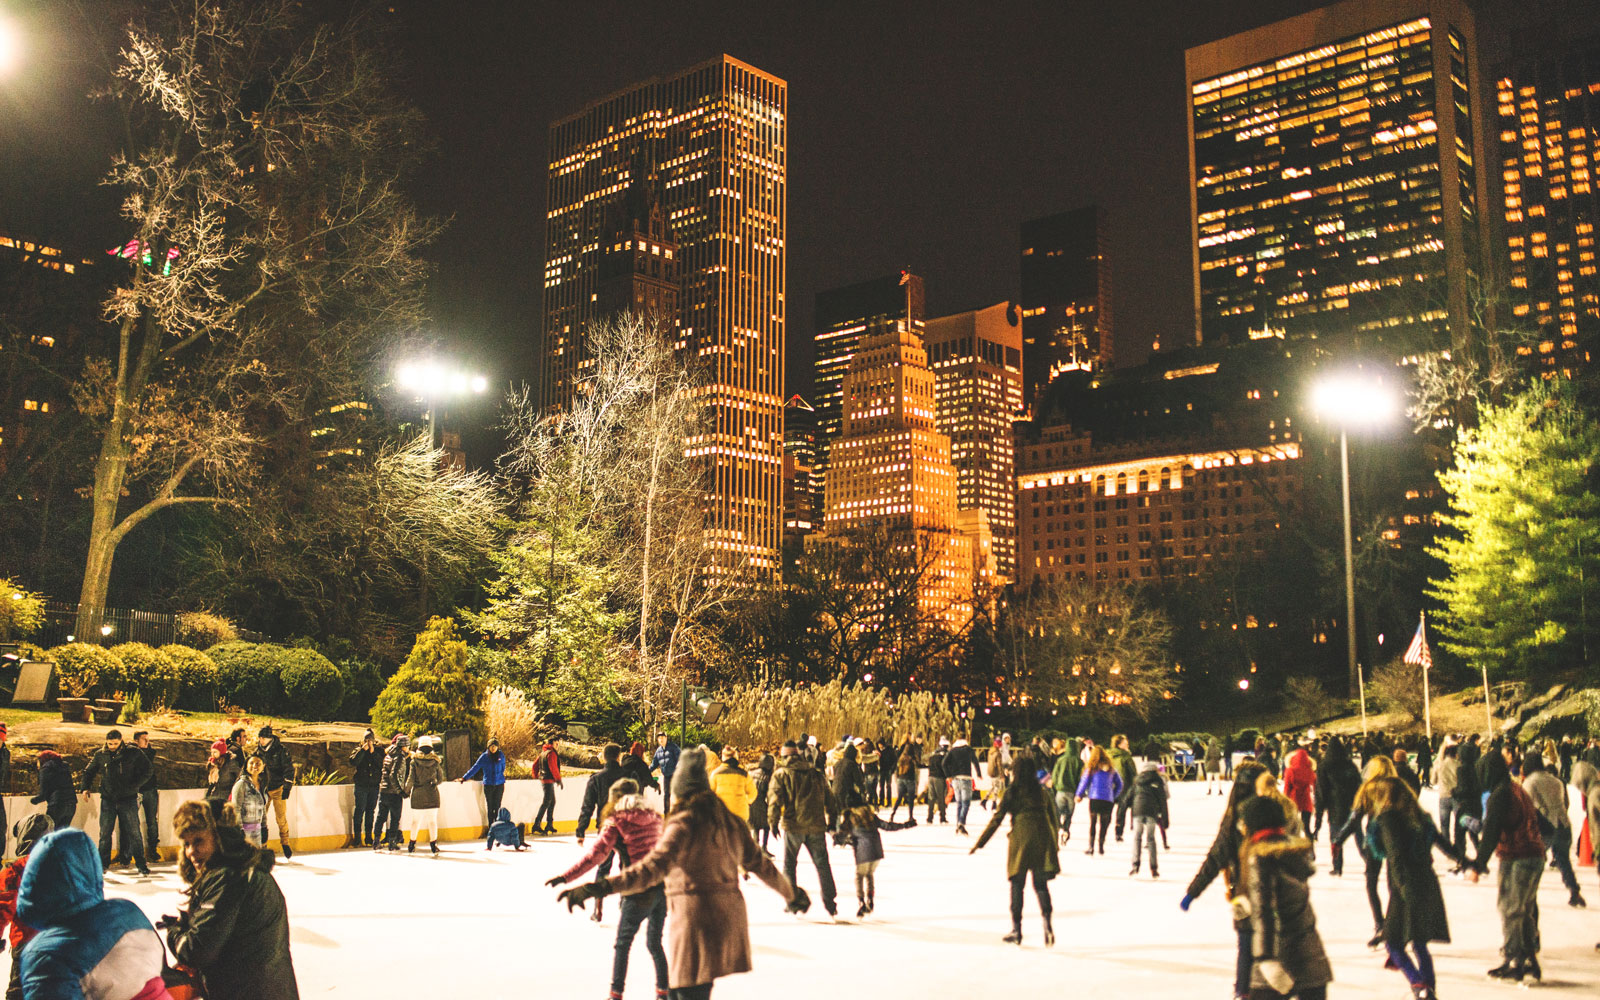 Ice Skating in Central Park